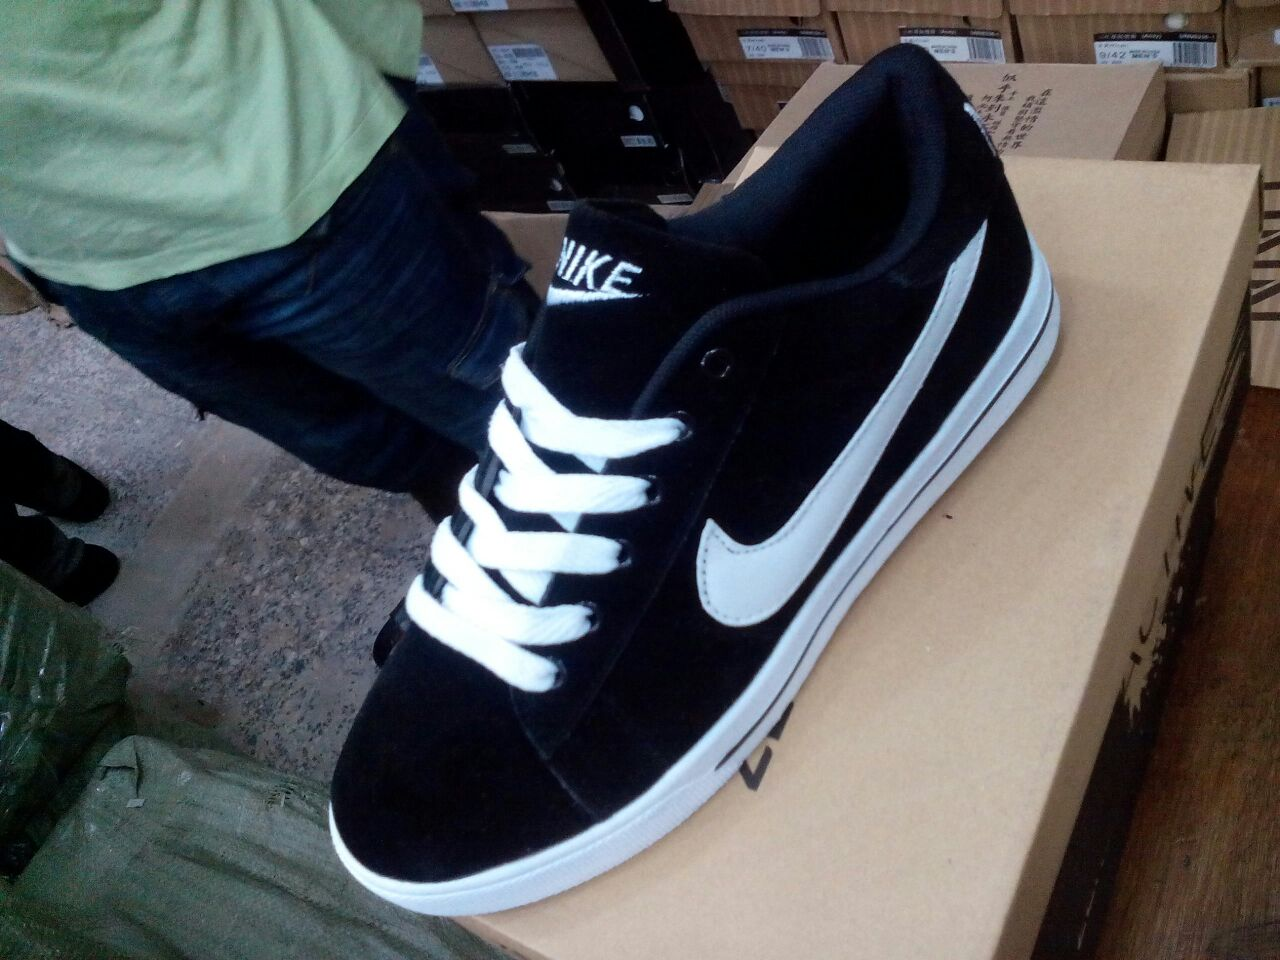 7913fa26396b Hot New Female Sneakers Now Available!!! - Fashion - Nigeria